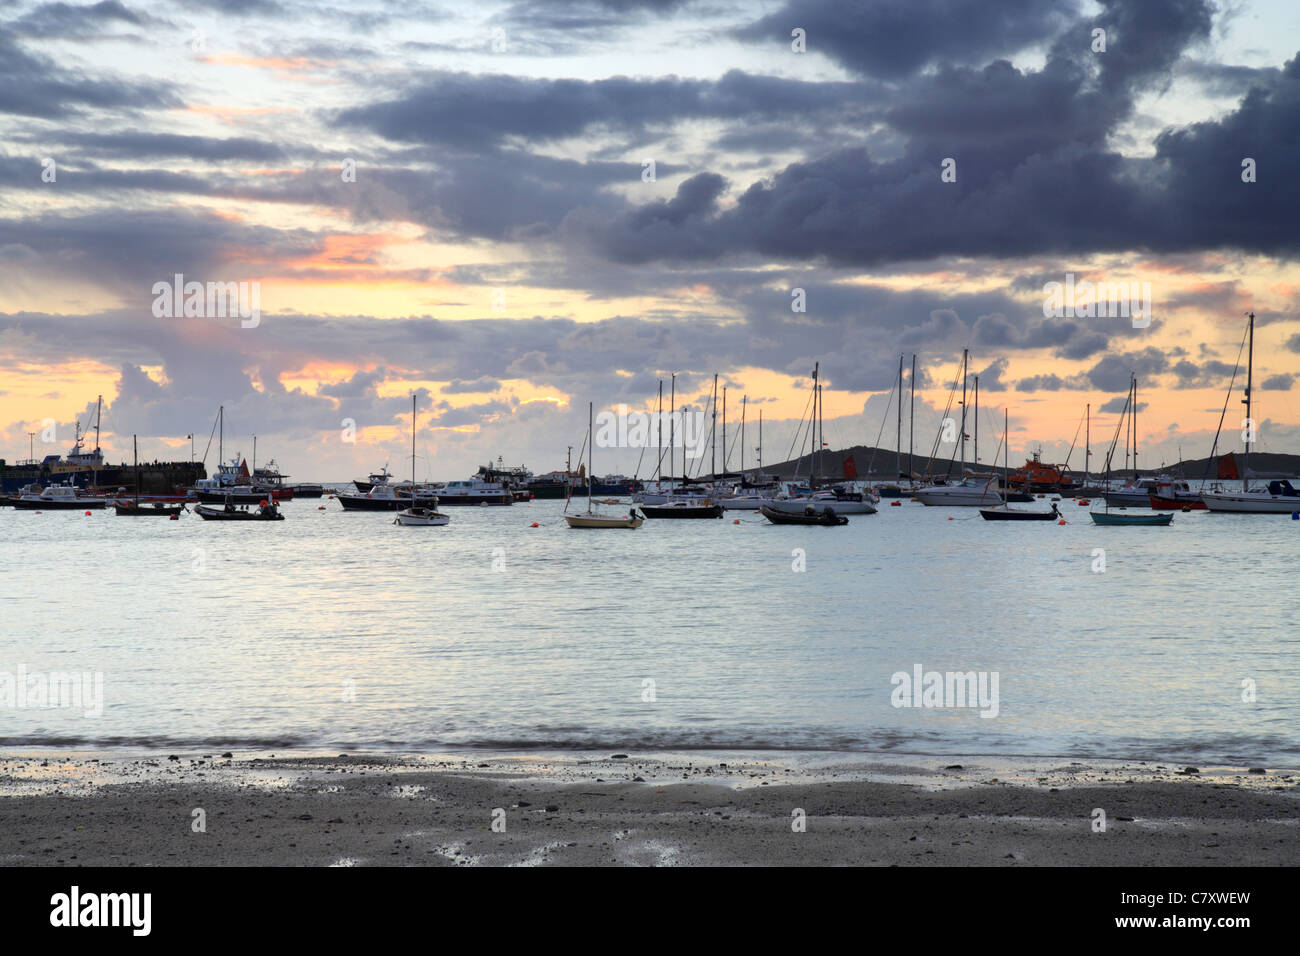 Hugh Town harbour from Porth Mellon Beach, St Marys, Isles of Scilly, Cornwall, stormy sunset - Stock Image